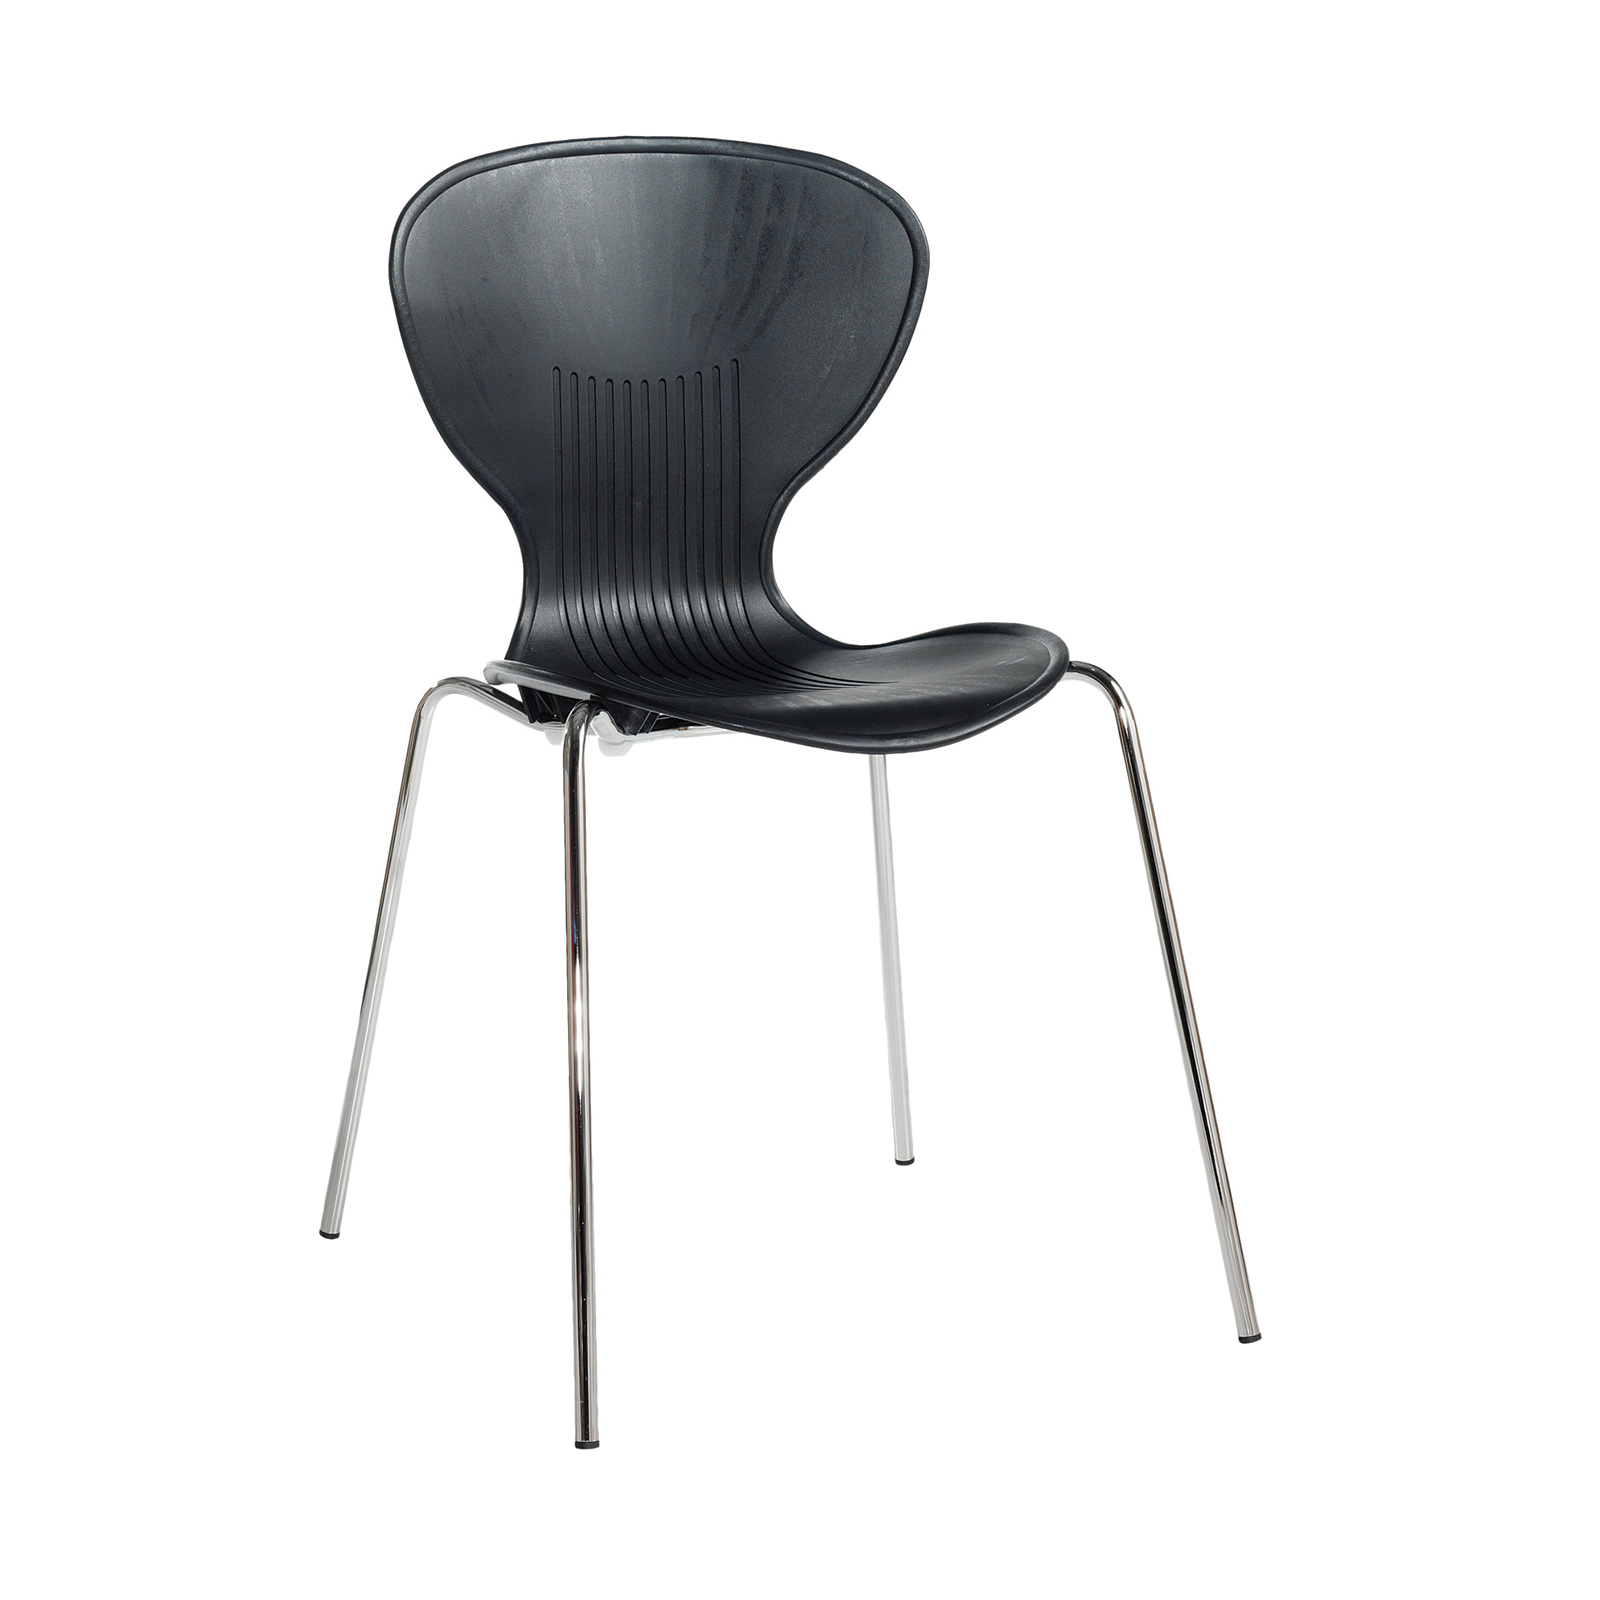 Sienna one piece shell chair with chrome legs (pack of 4) - black